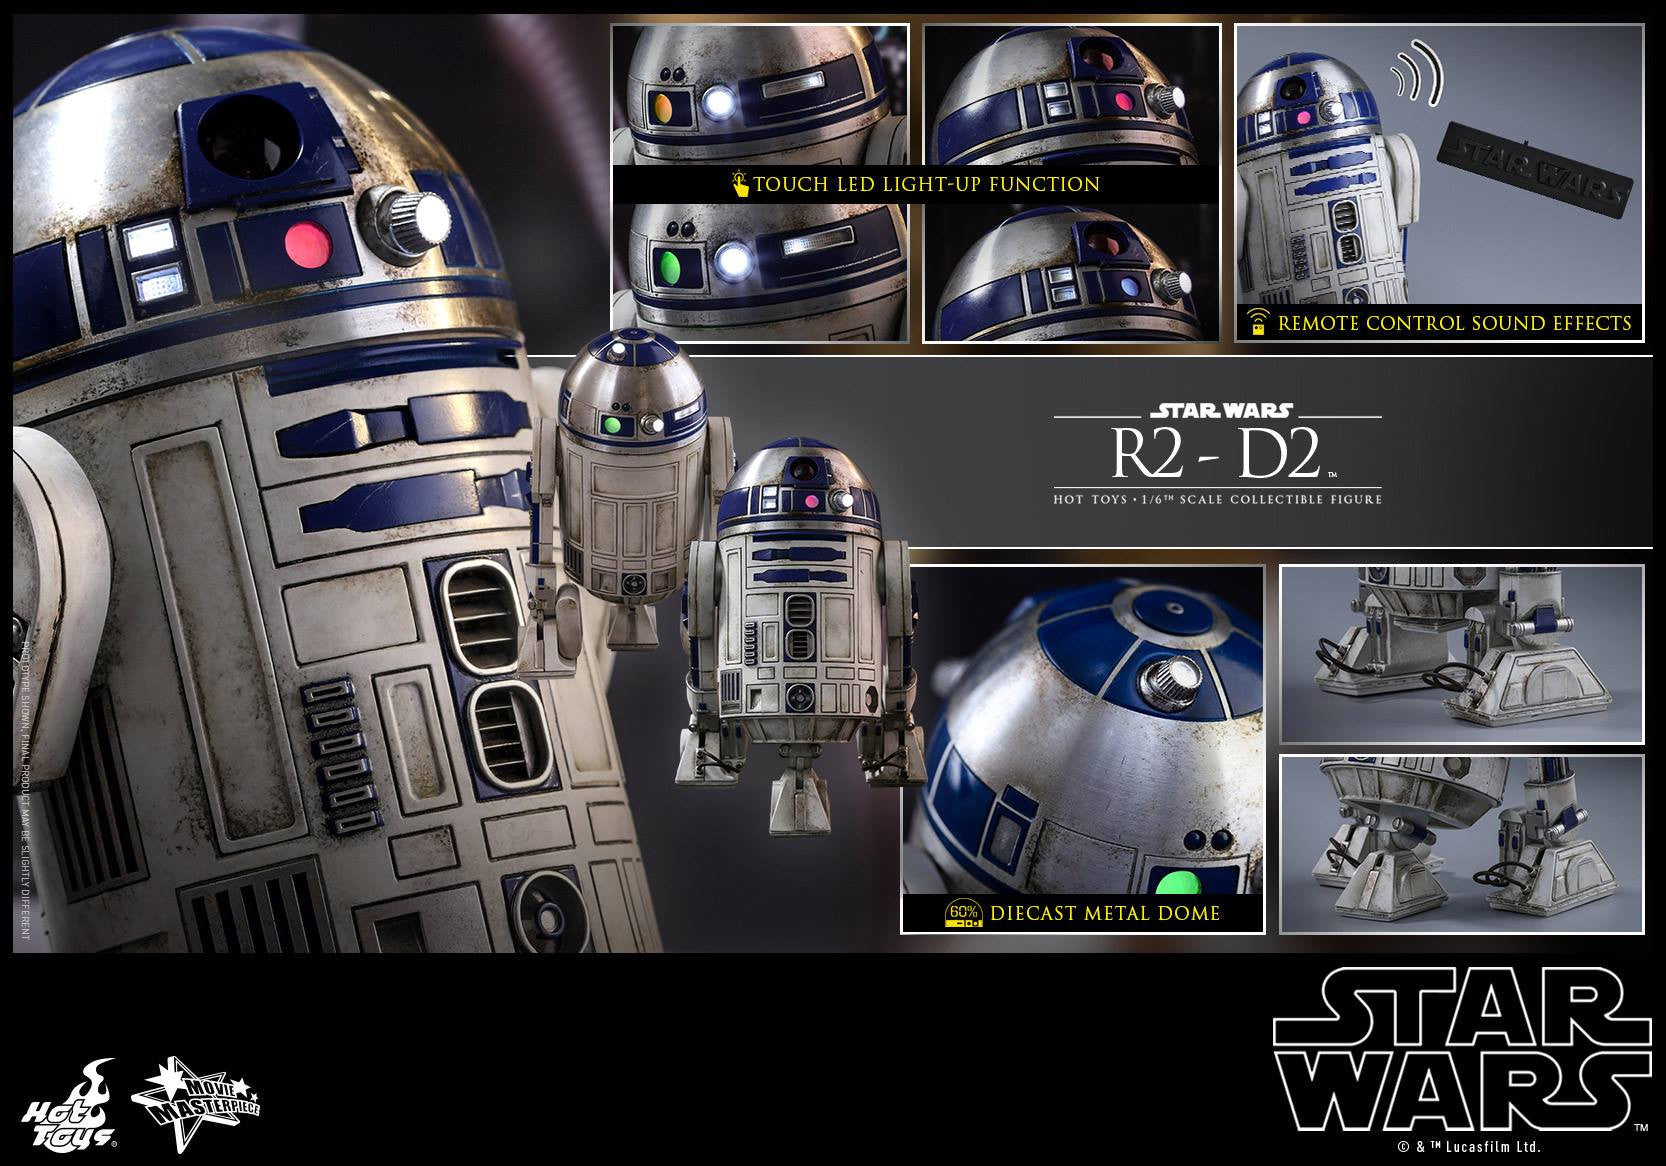 Hot Toys - MMS408 - Star Wars: The Force Awakens - R2-D2 - Marvelous Toys - 14